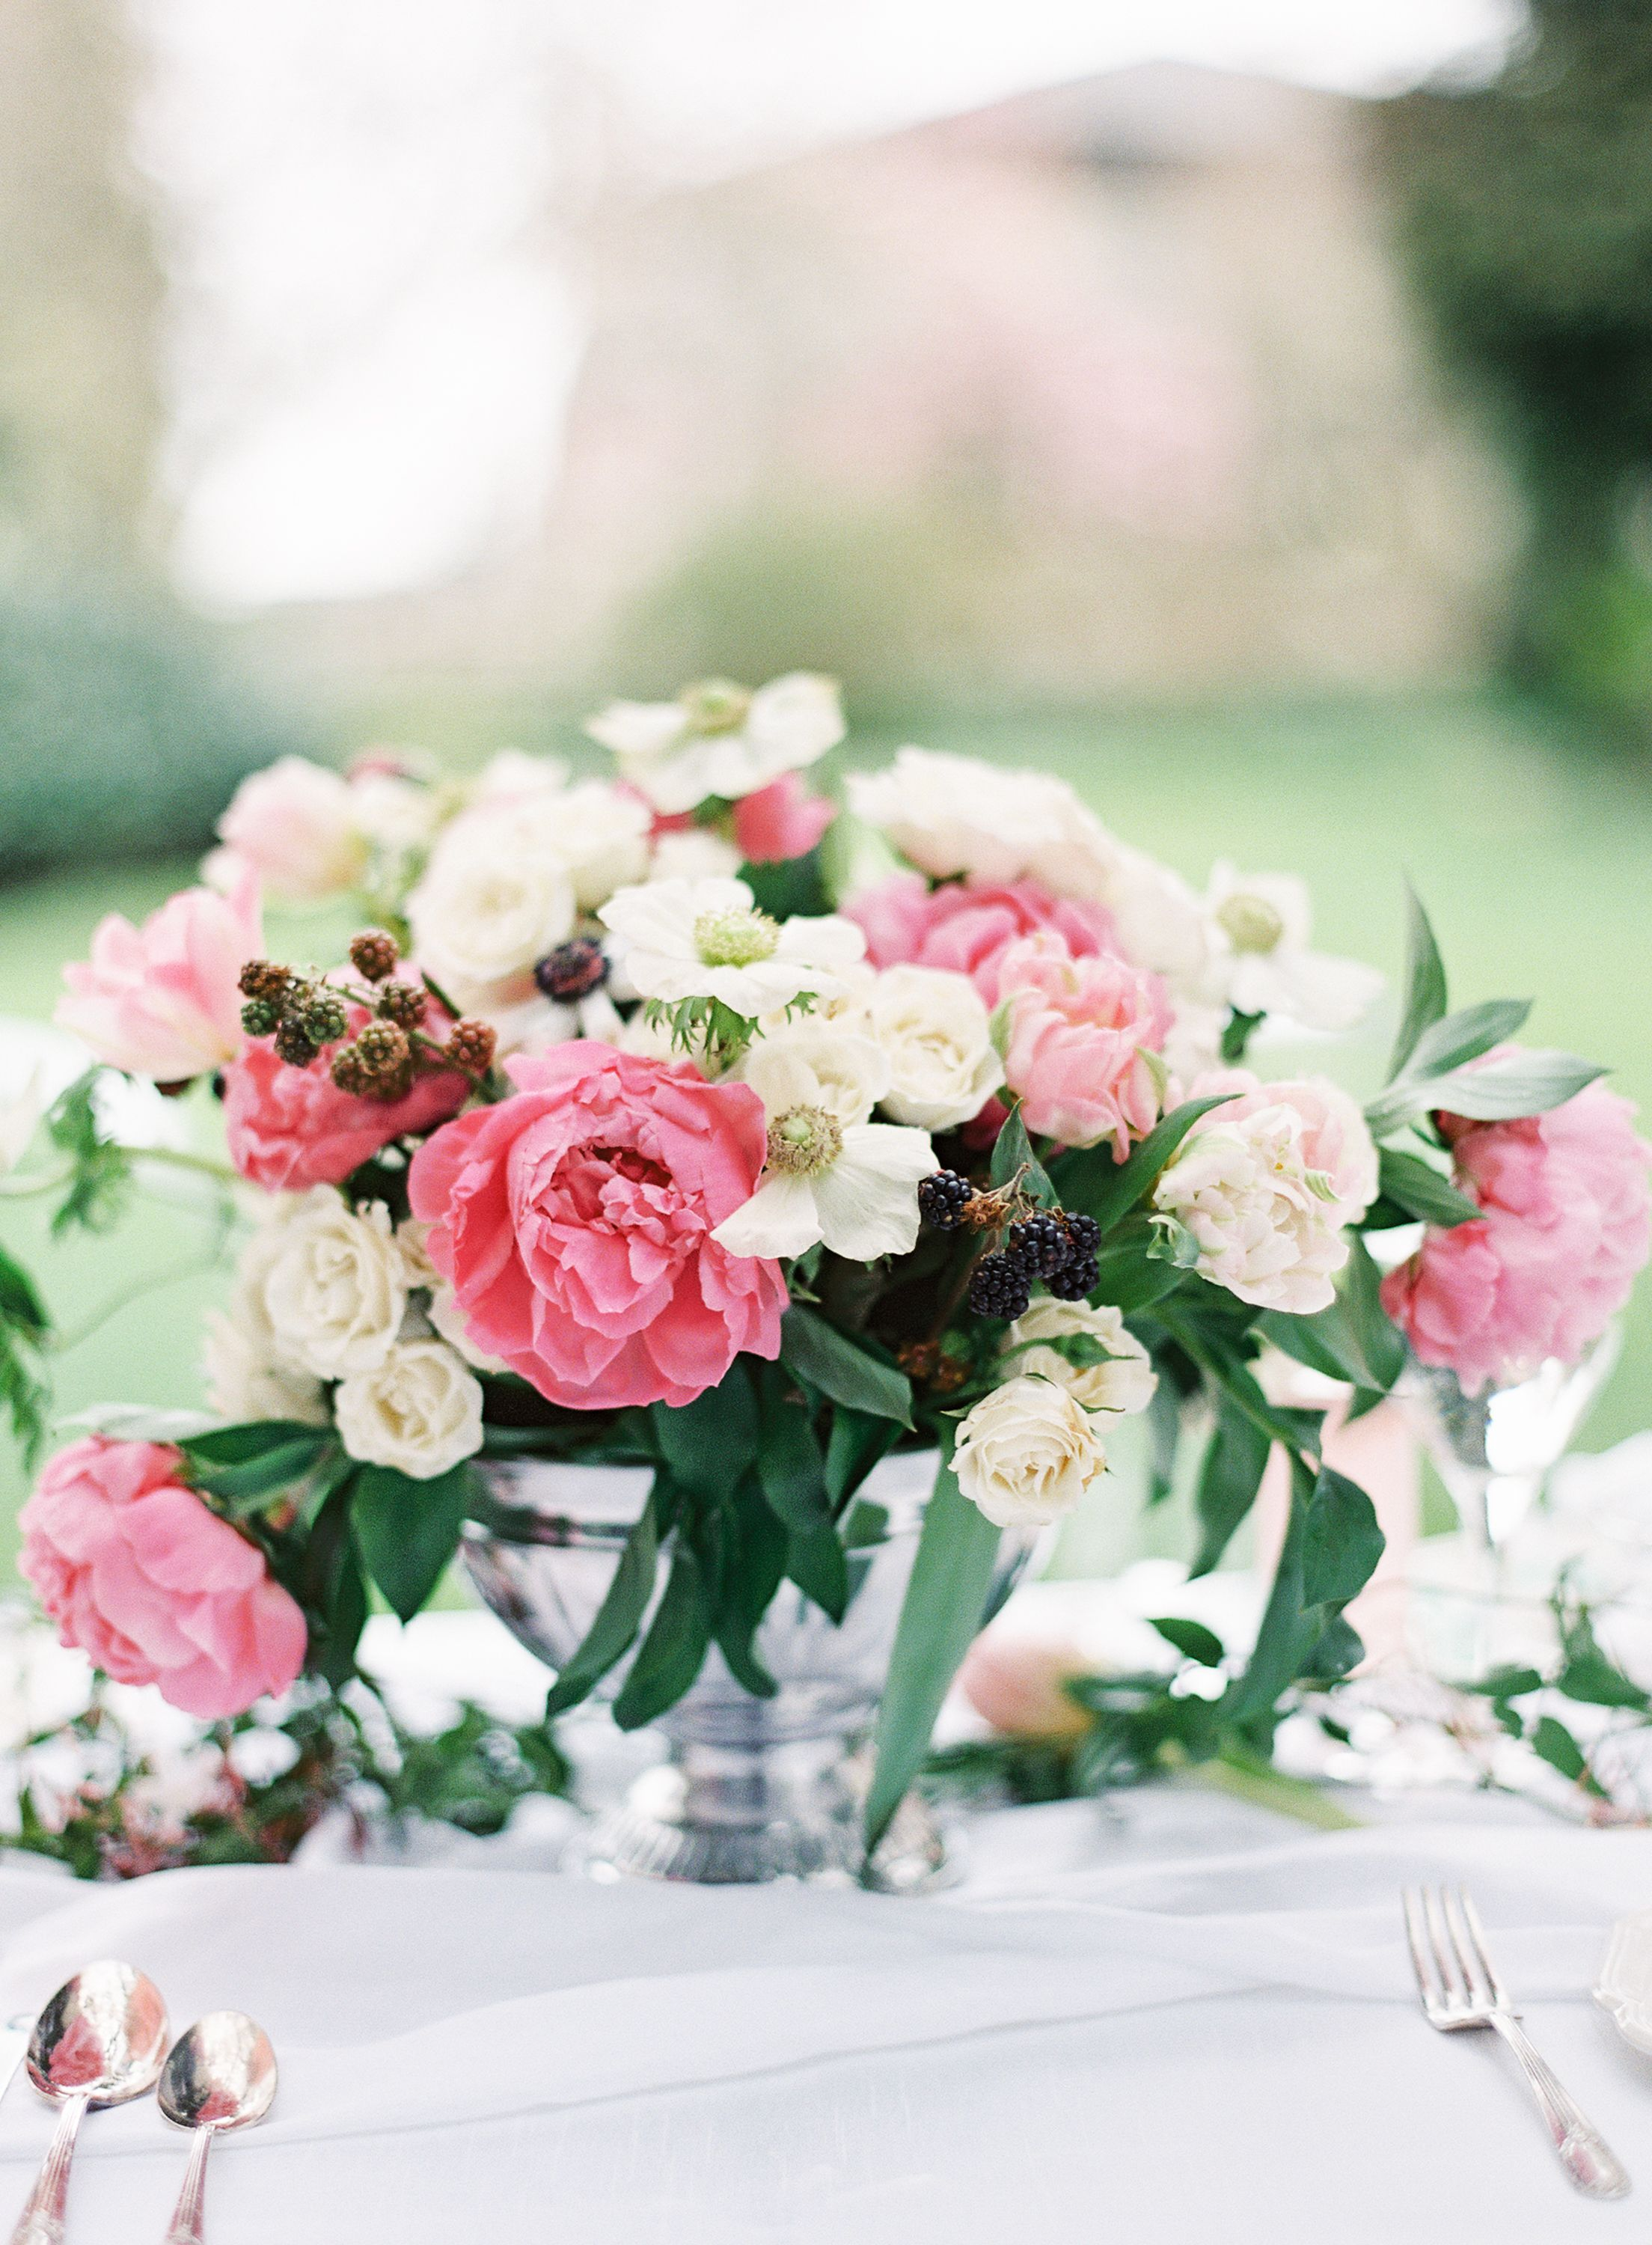 Spring Wedding Flowers By Valley Co Image By Omalley